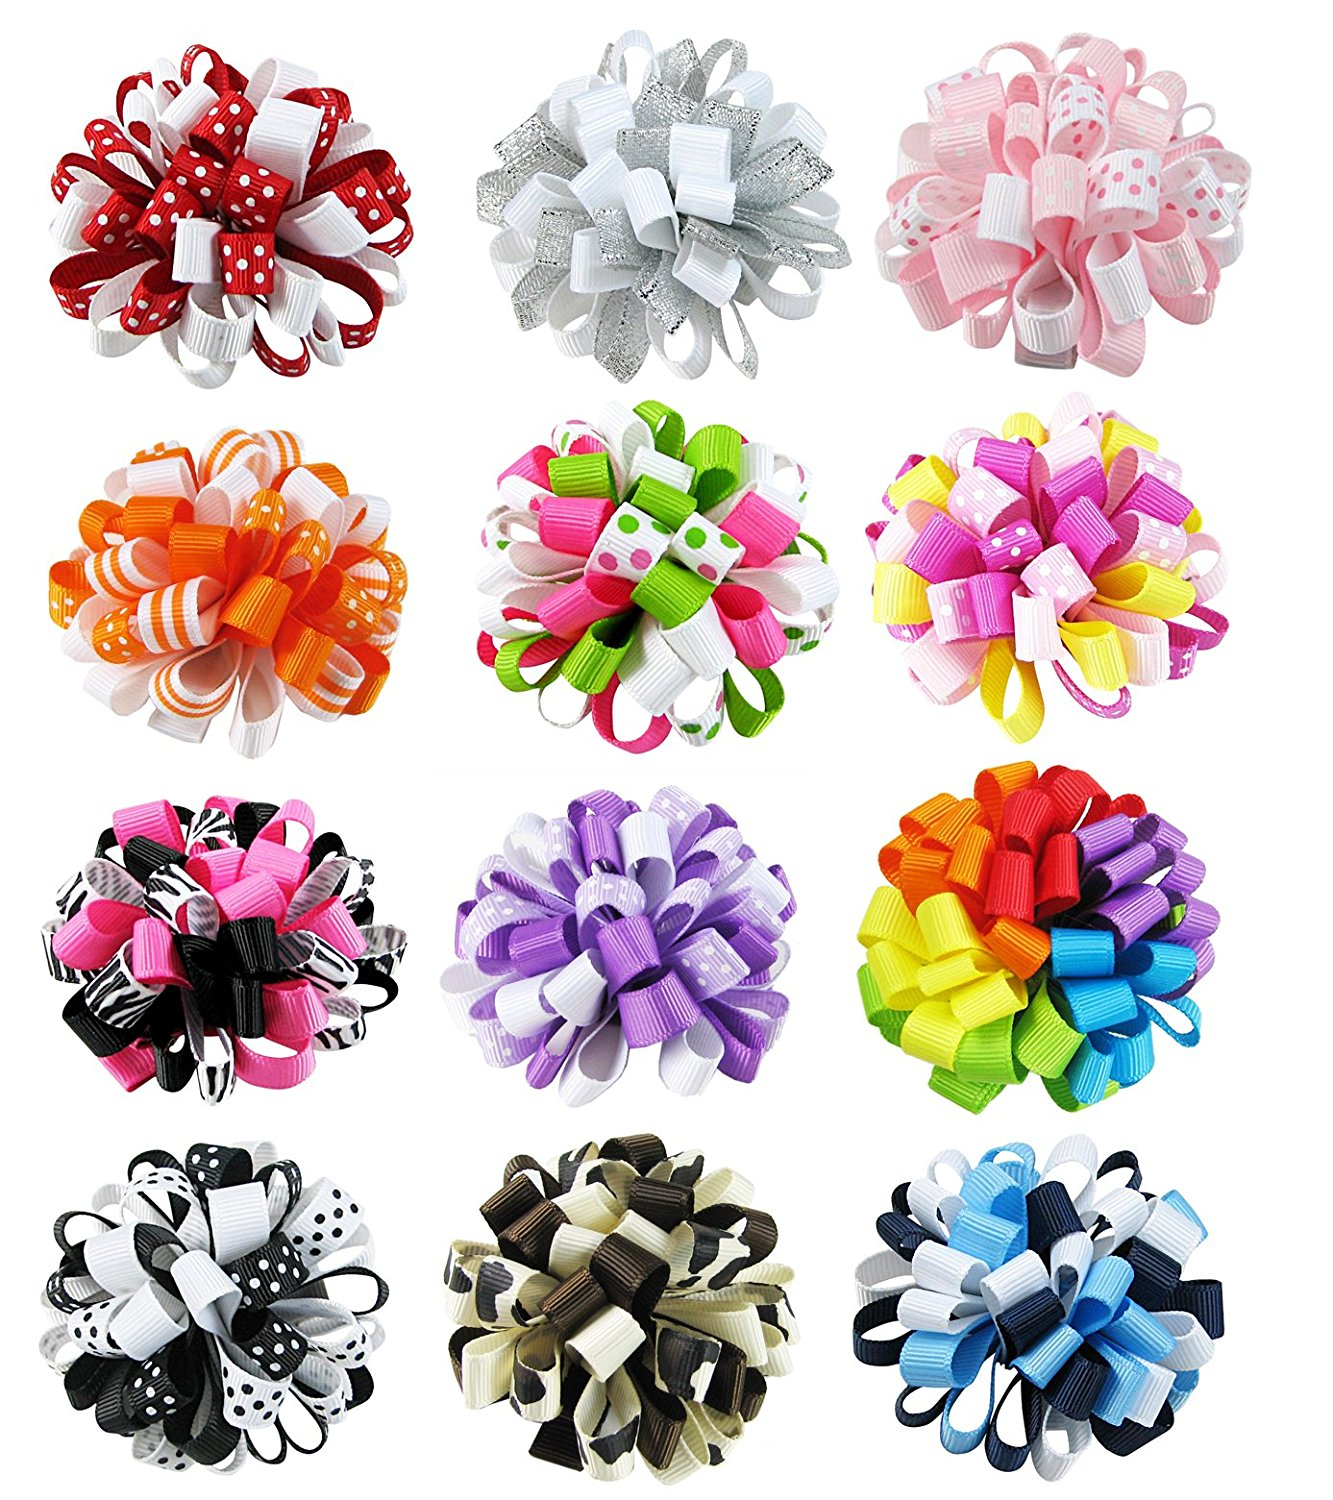 """HipGirl 12pc 2.5"""" Loopy Puff Hair Bow Clip, Barrette.Grosgrain Ribbon Alligator Clip For Girl Baby Teen Kid Toddler Adult.For Pigtails,Ponytails.Assorted Beauty Accessories,Match Outfits,Dresses,Set 1"""